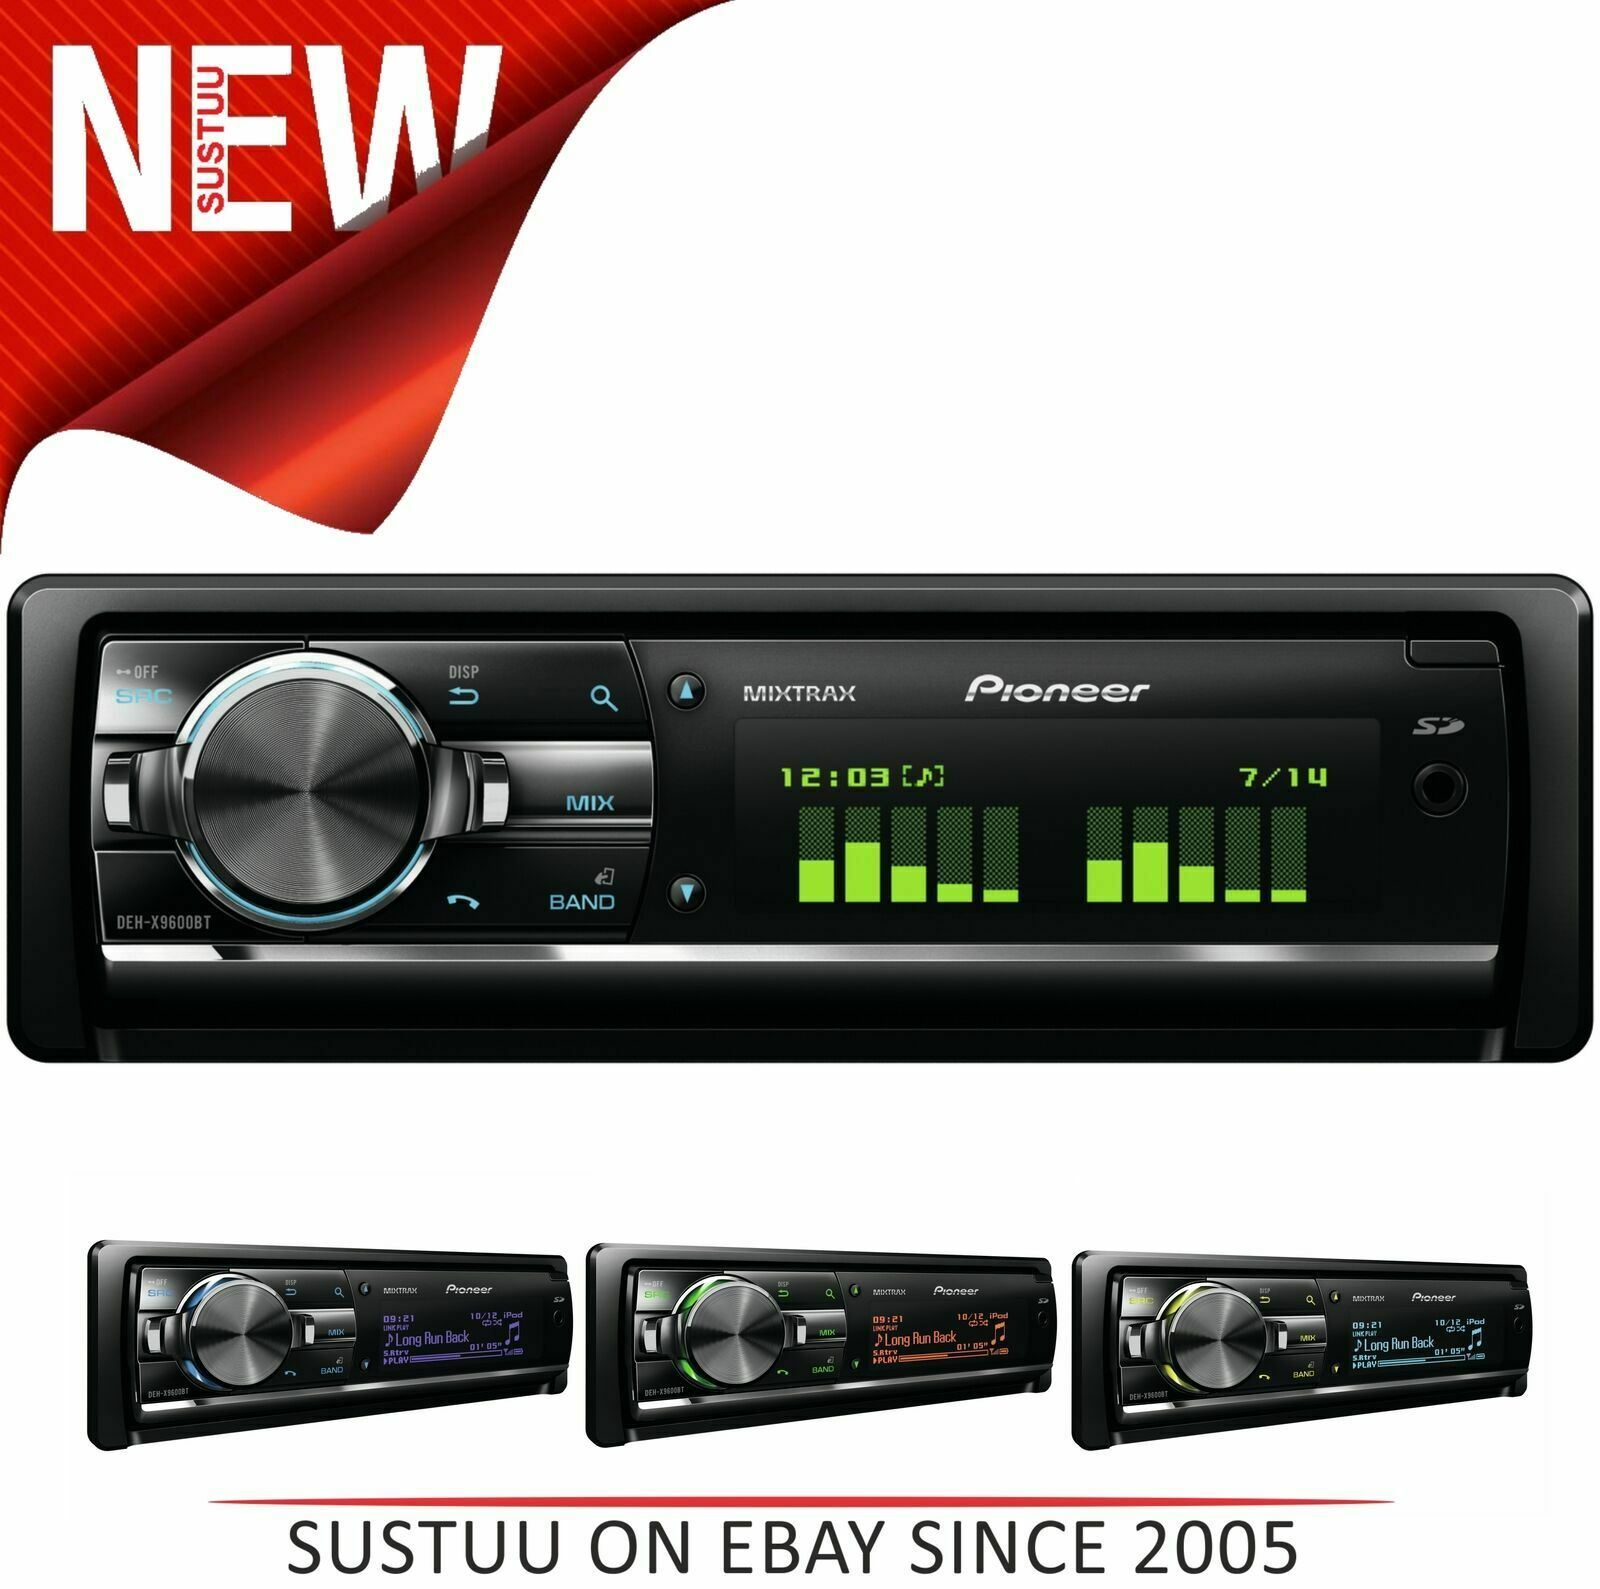 Vauxhall Tigra car radio Pioneer stereo USB AUX in iPod iPhone Android player